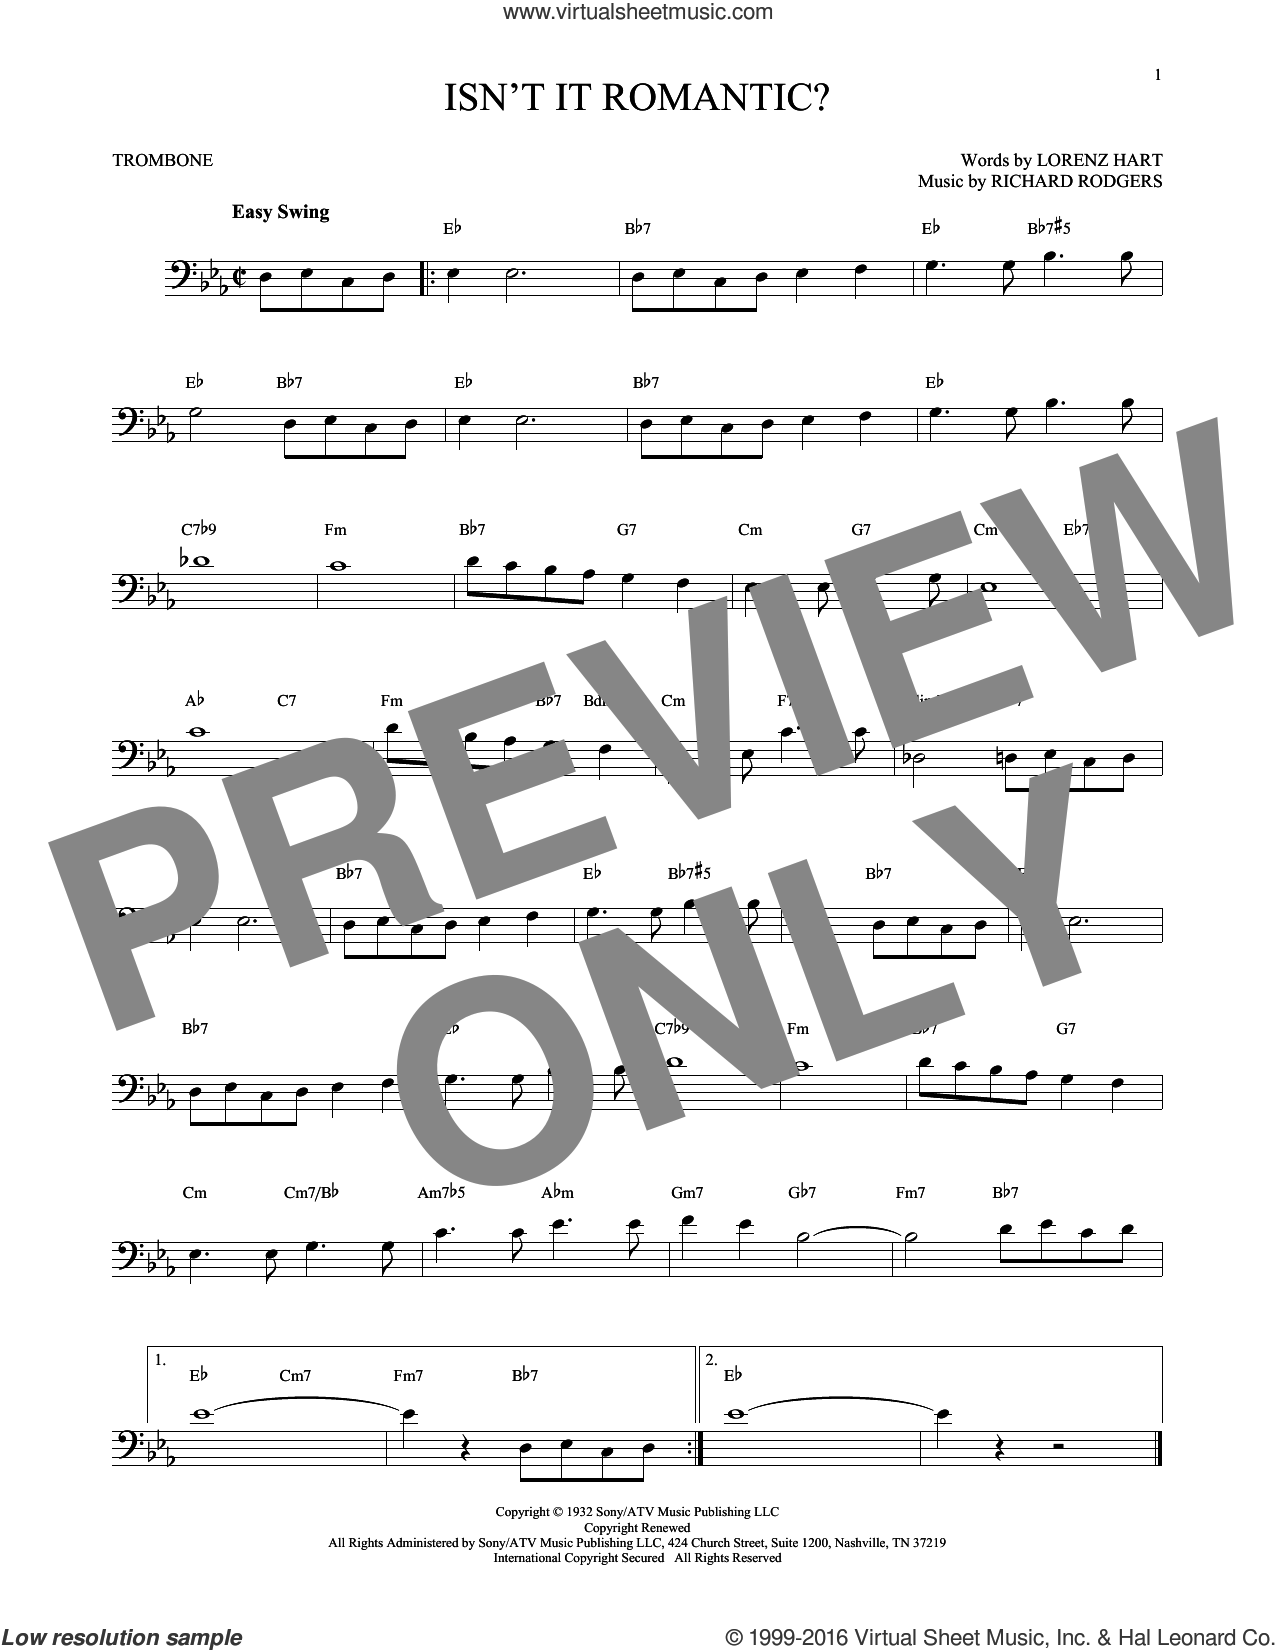 Isn't It Romantic? sheet music for trombone solo by Richard Rodgers